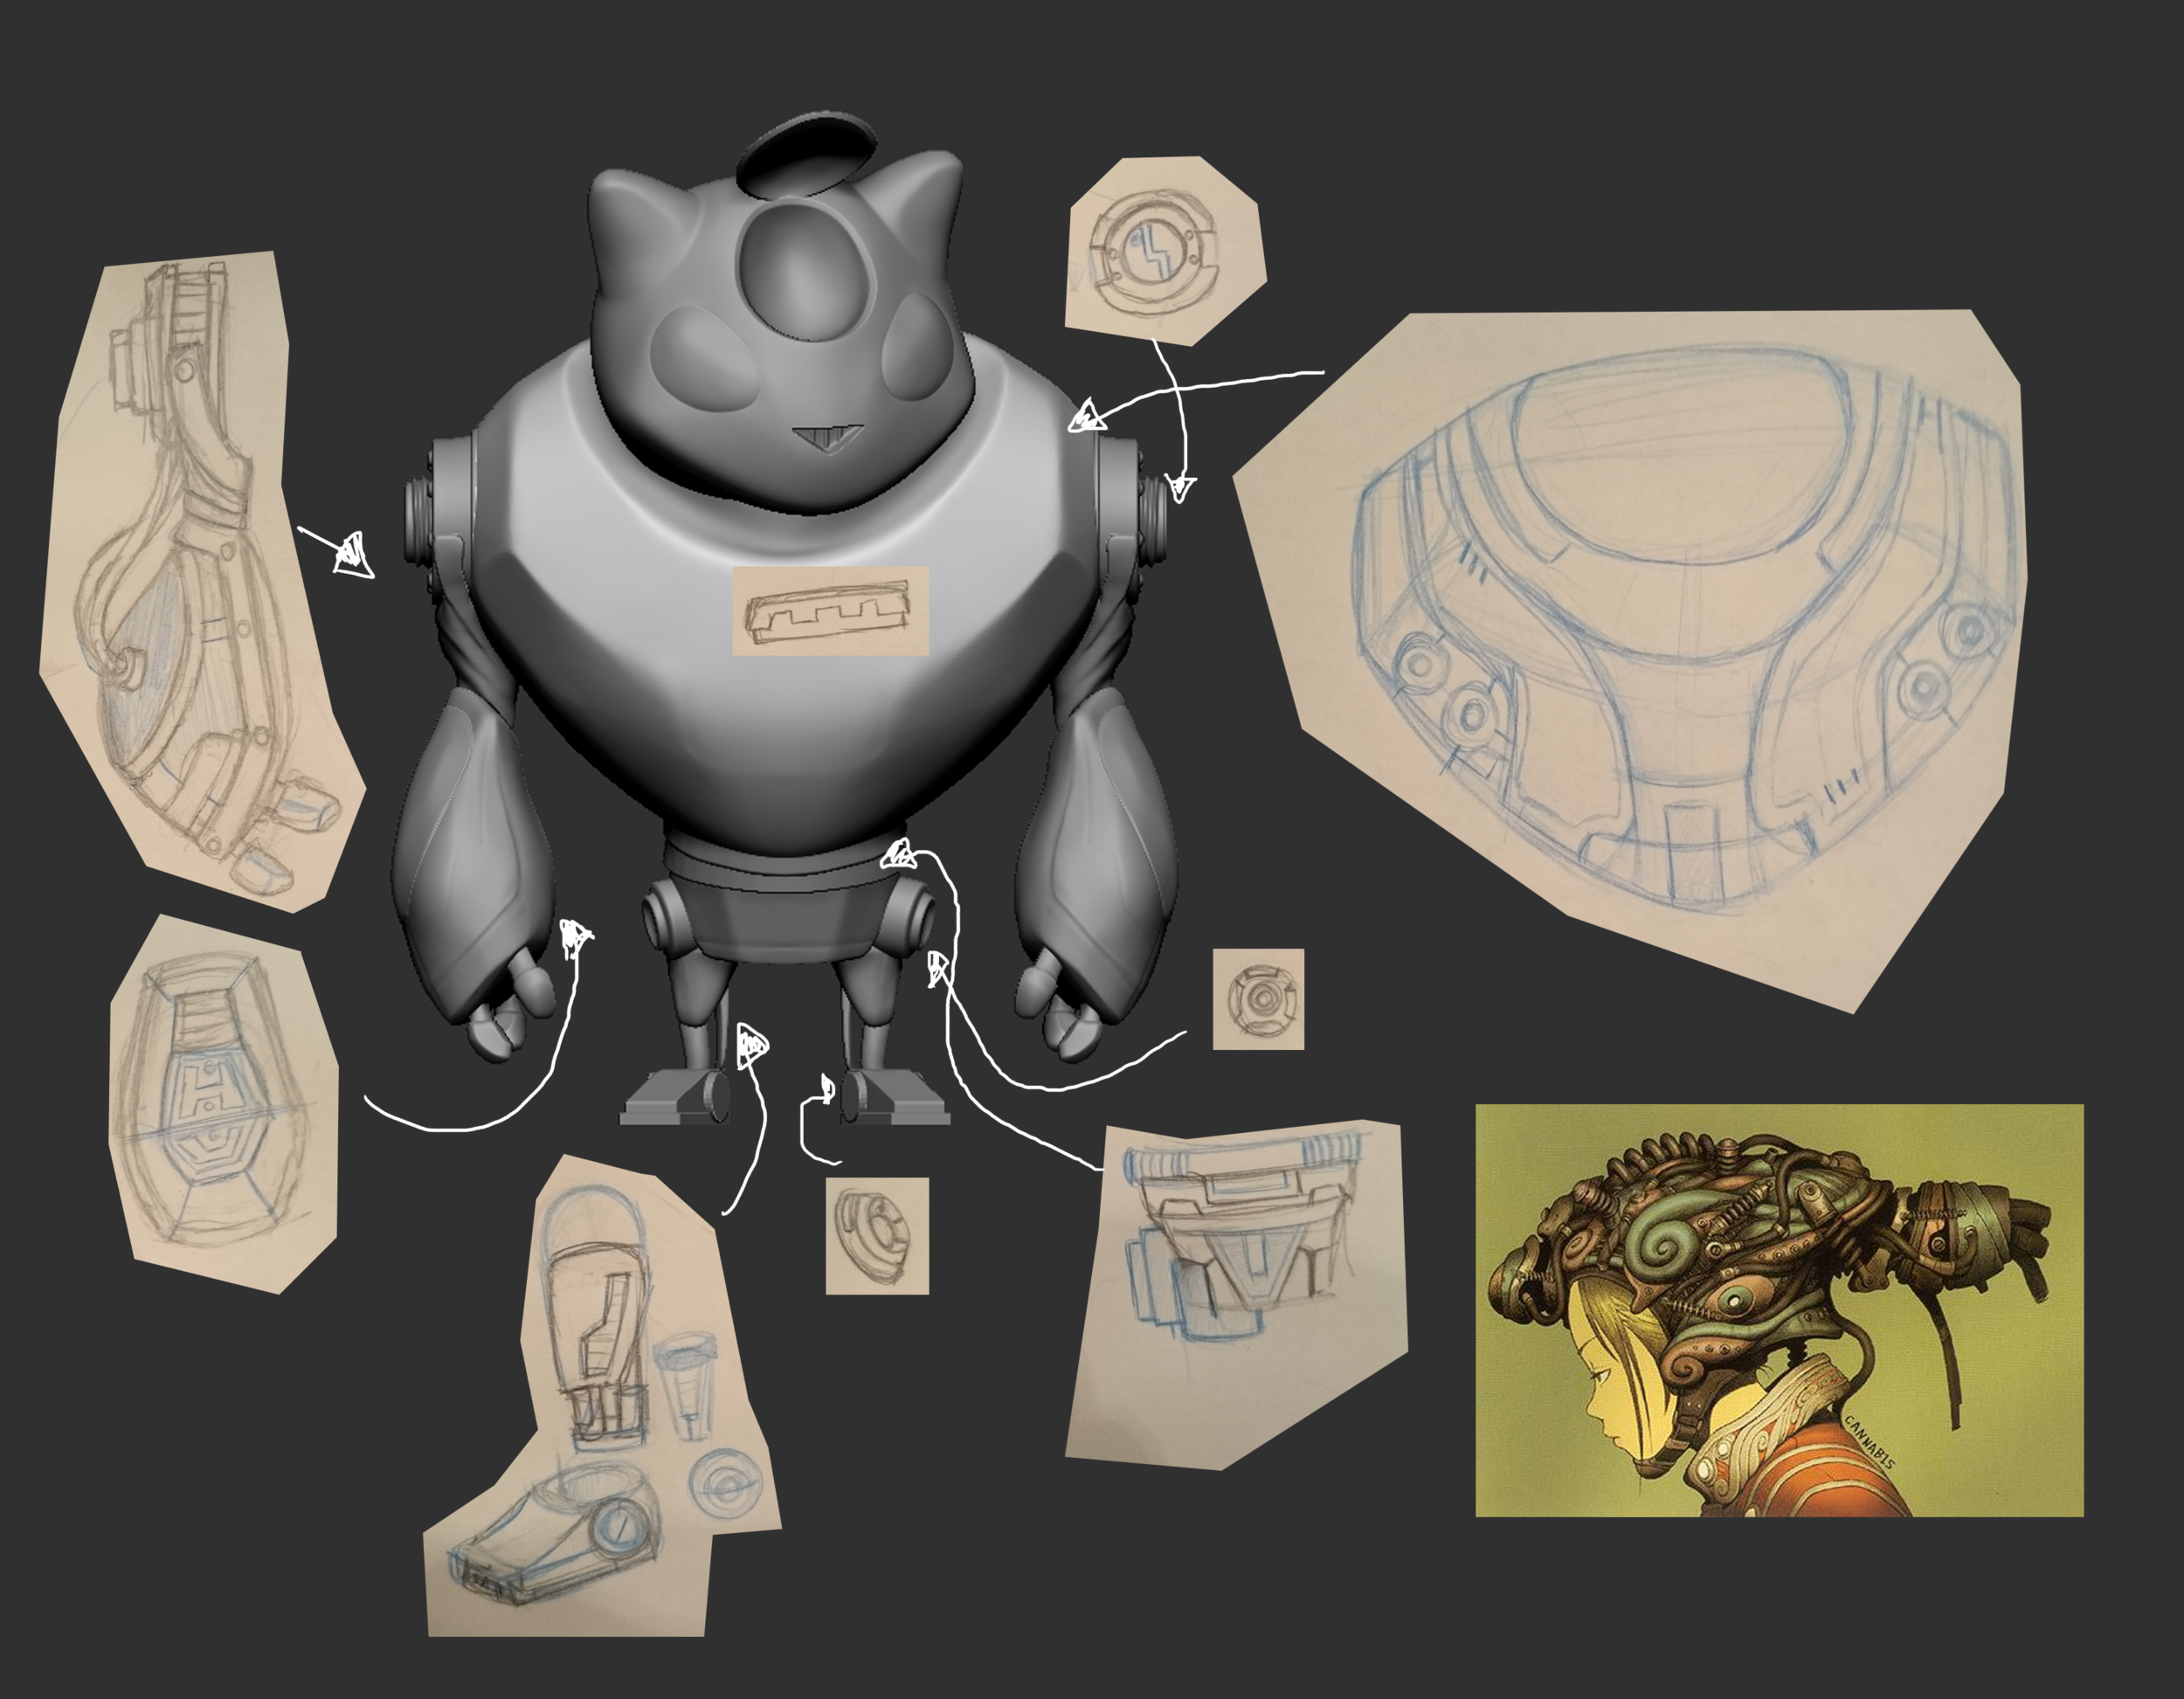 Sketching out ideas of what details I could add in.